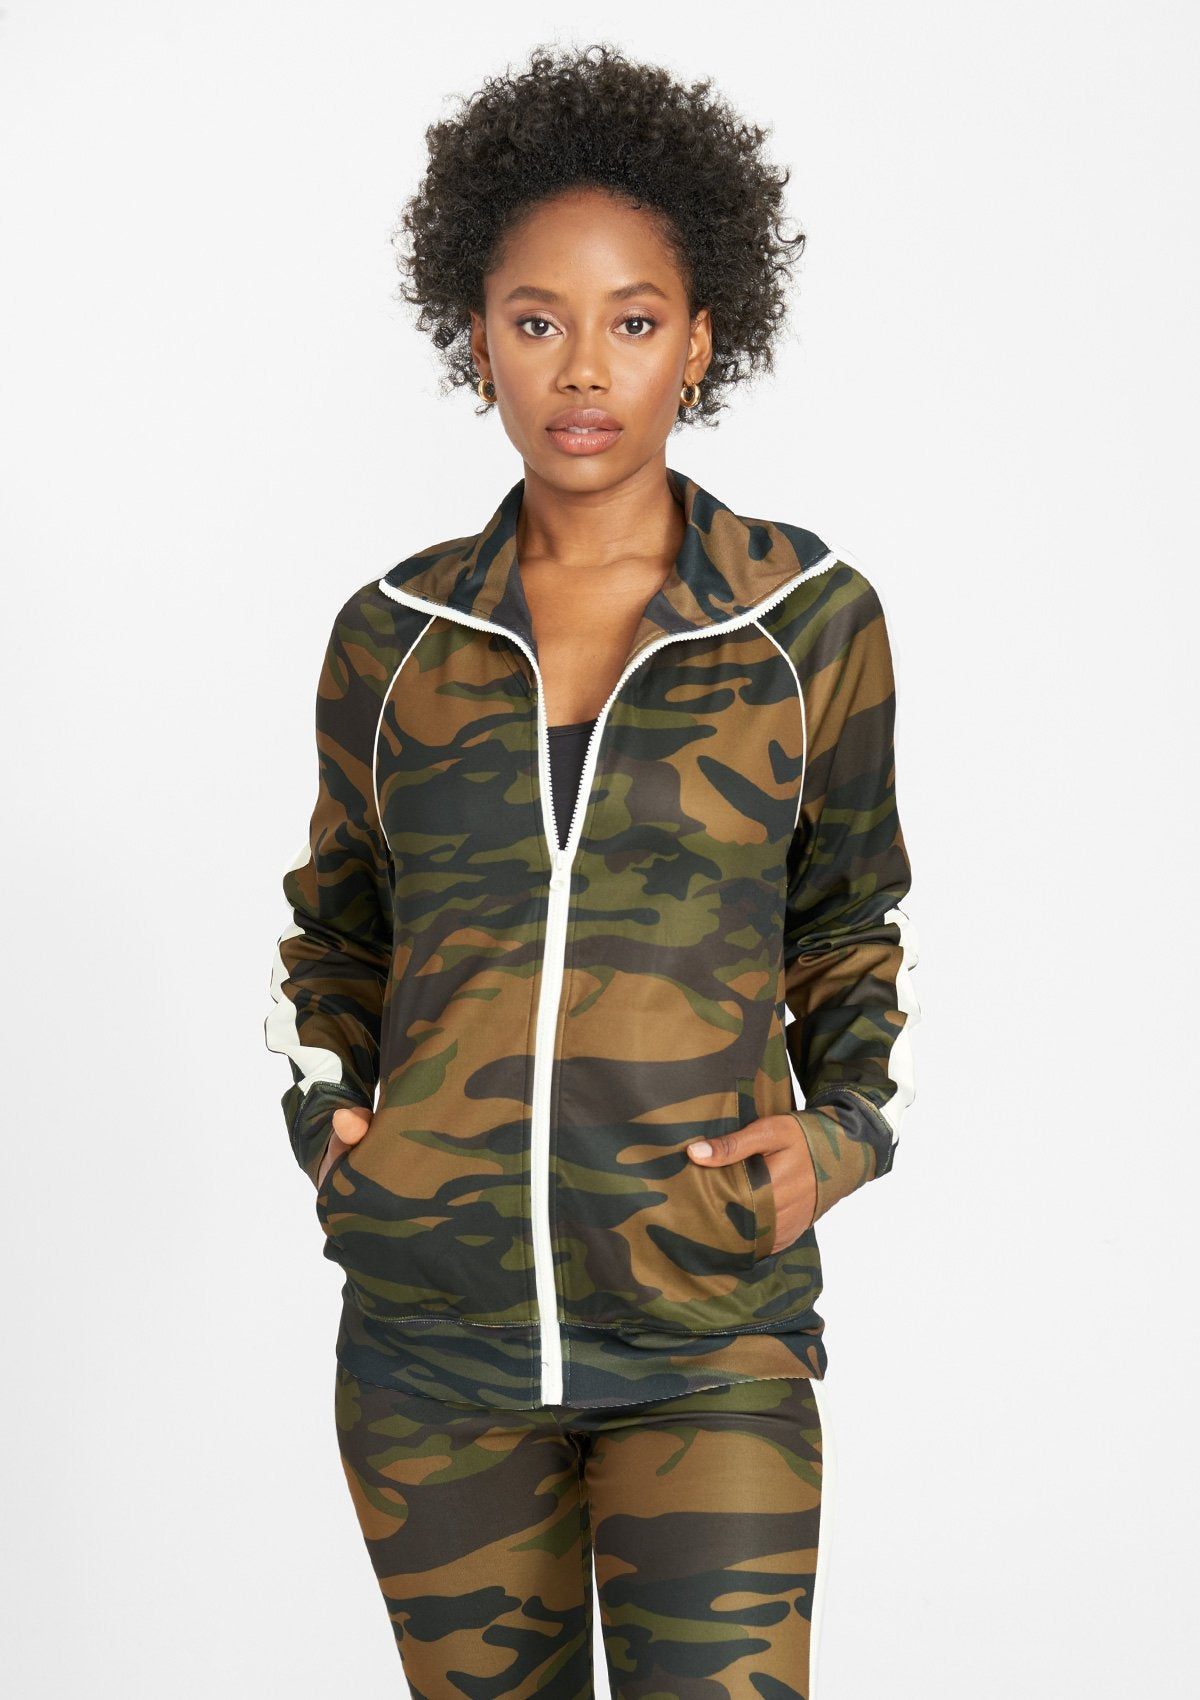 Alloy Apparel Tall Track Jacket for Women in Camo Ivory Size L   Polyester